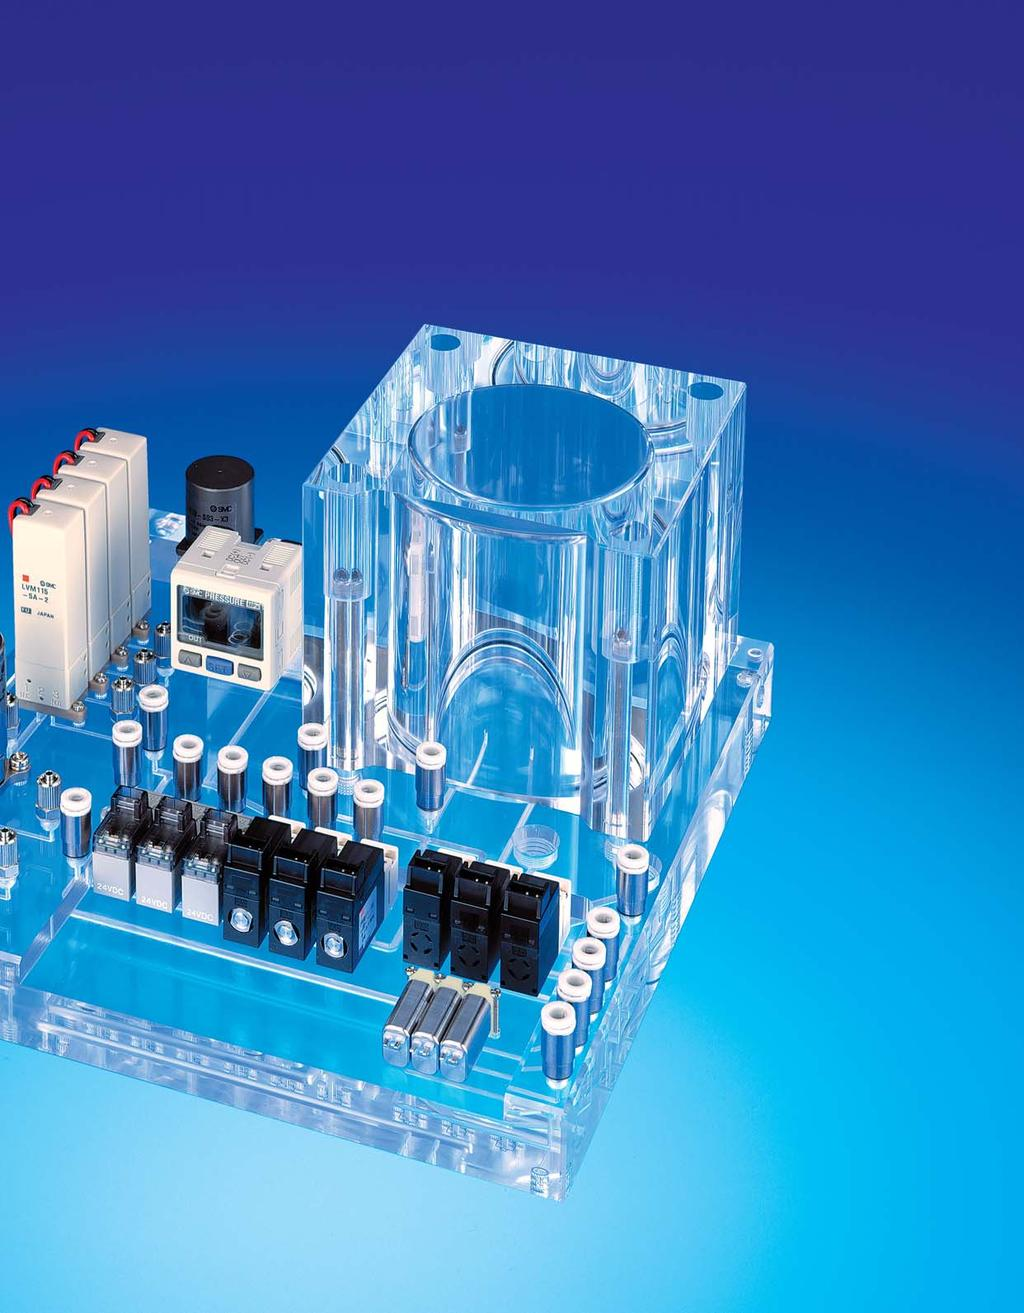 Smc Life Science Analytical Instrumentation Microfluidics Pdf Manifold Block Wiring Diagram Offers You The Benefit Of Single Source Supply Plastic Manifolds And Valves